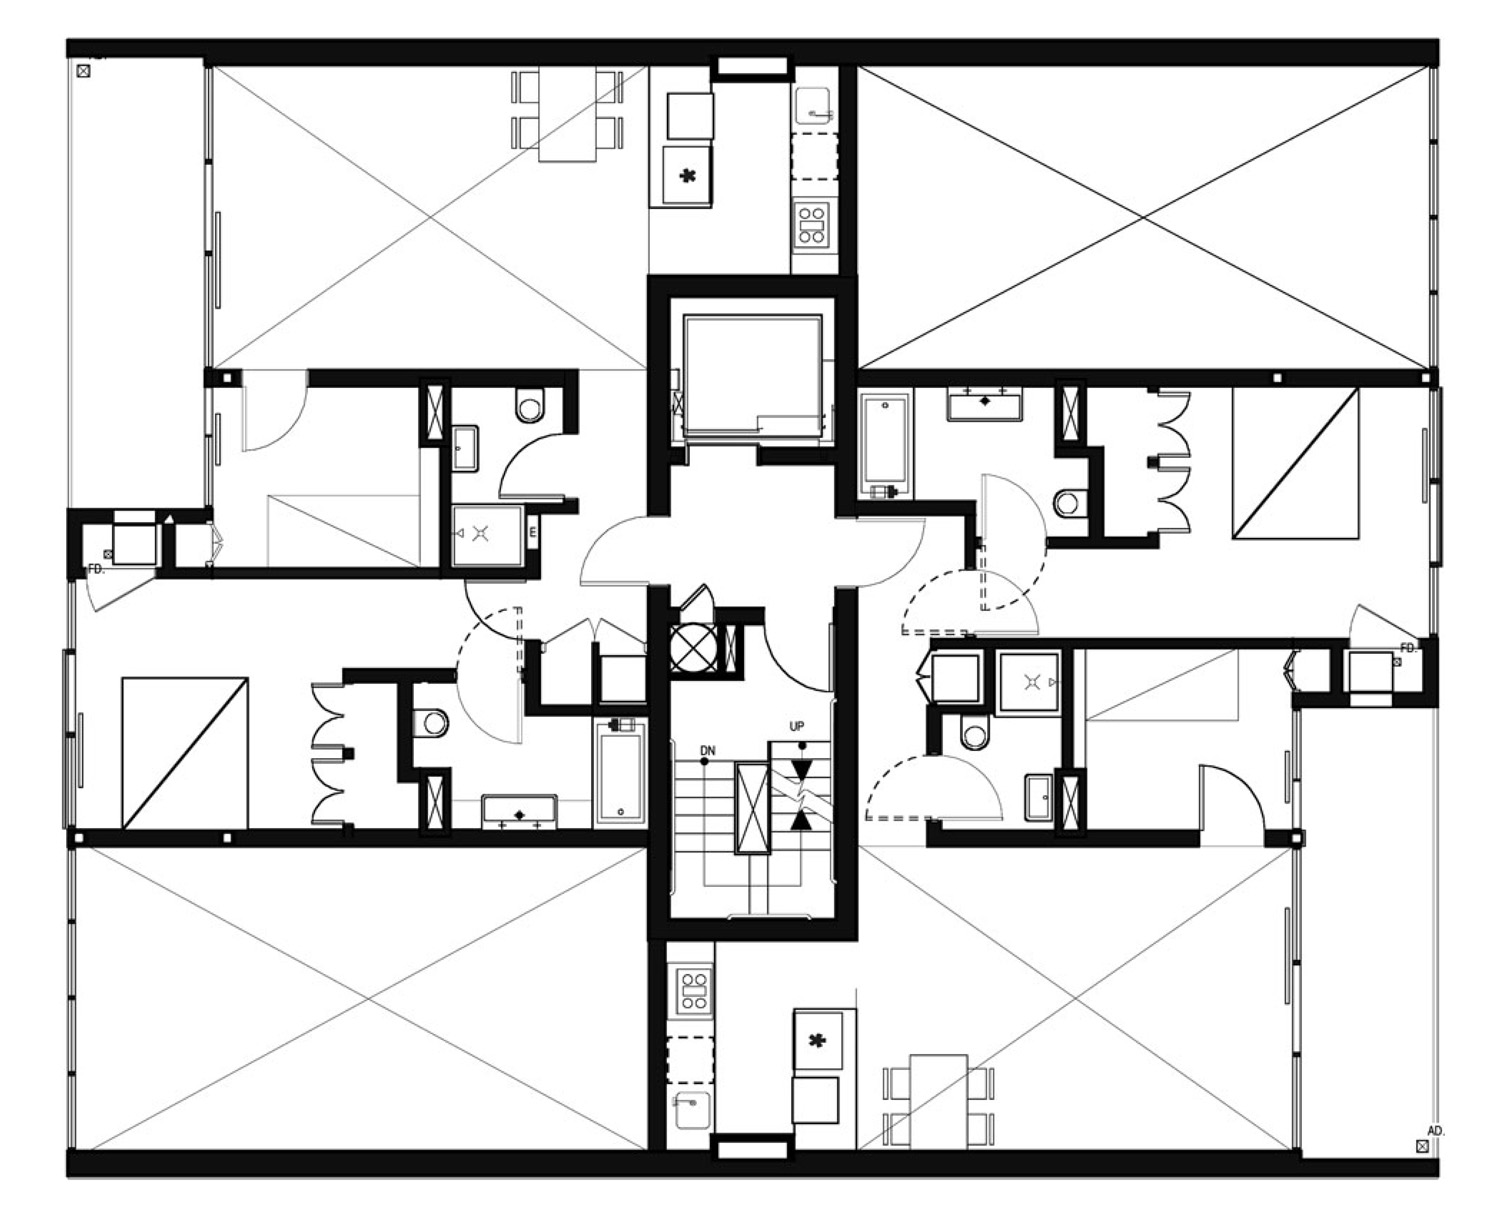 Architecture photography 934230828 floor plan 20472 Architectural floor plans